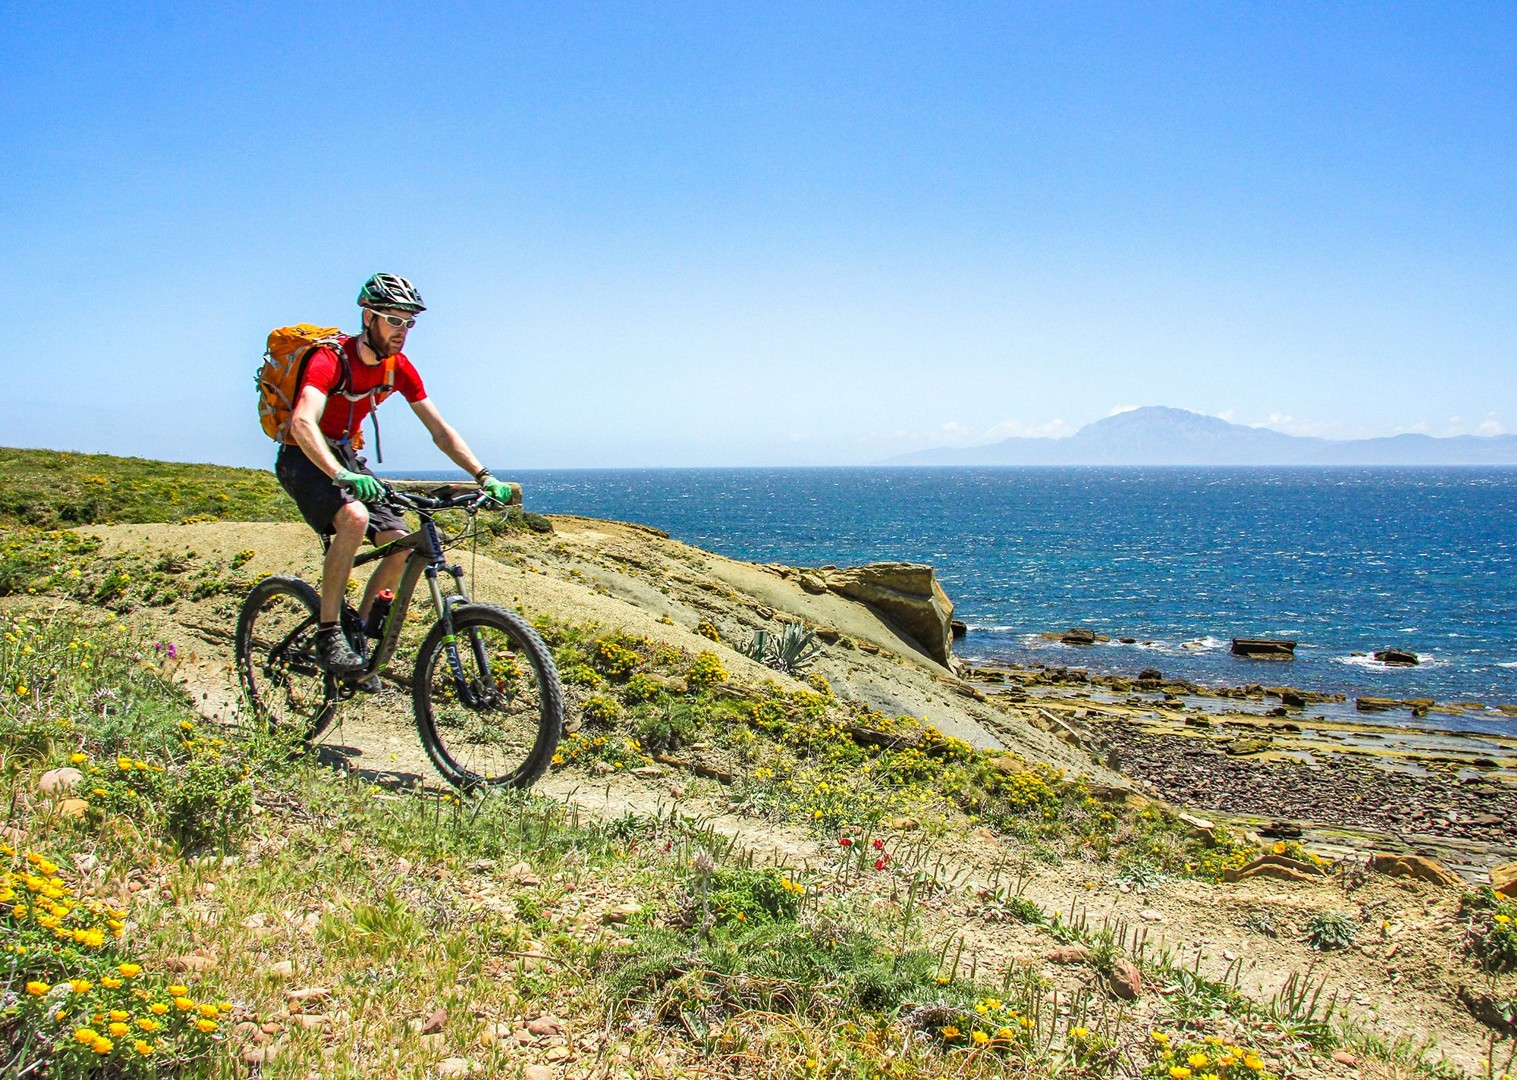 saddle-skedaddle-trans-andaluz-guided-mountain-bike-holiday-spain-cycling.jpg - Spain - Trans Andaluz - Guided Mountain Bike Holiday - Mountain Biking